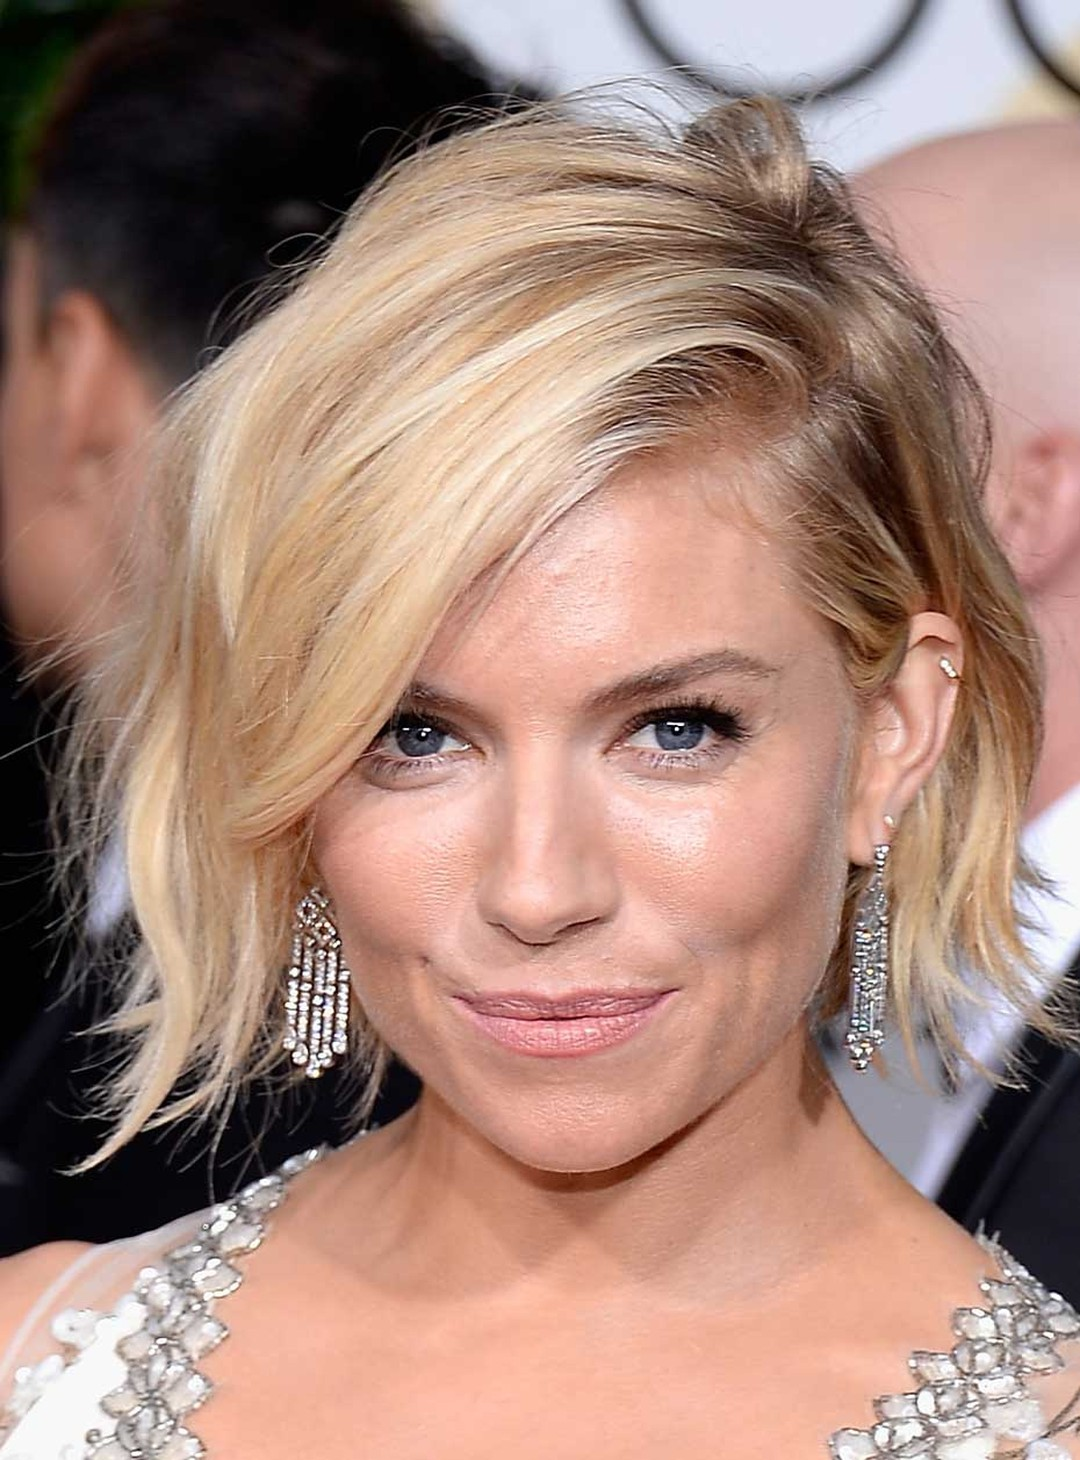 British actress Sienna Miller showcased these Platinum and diamond drop earrings from Tiffany and Co. at the 2015 Golden Globe Awards. (Getty Images)